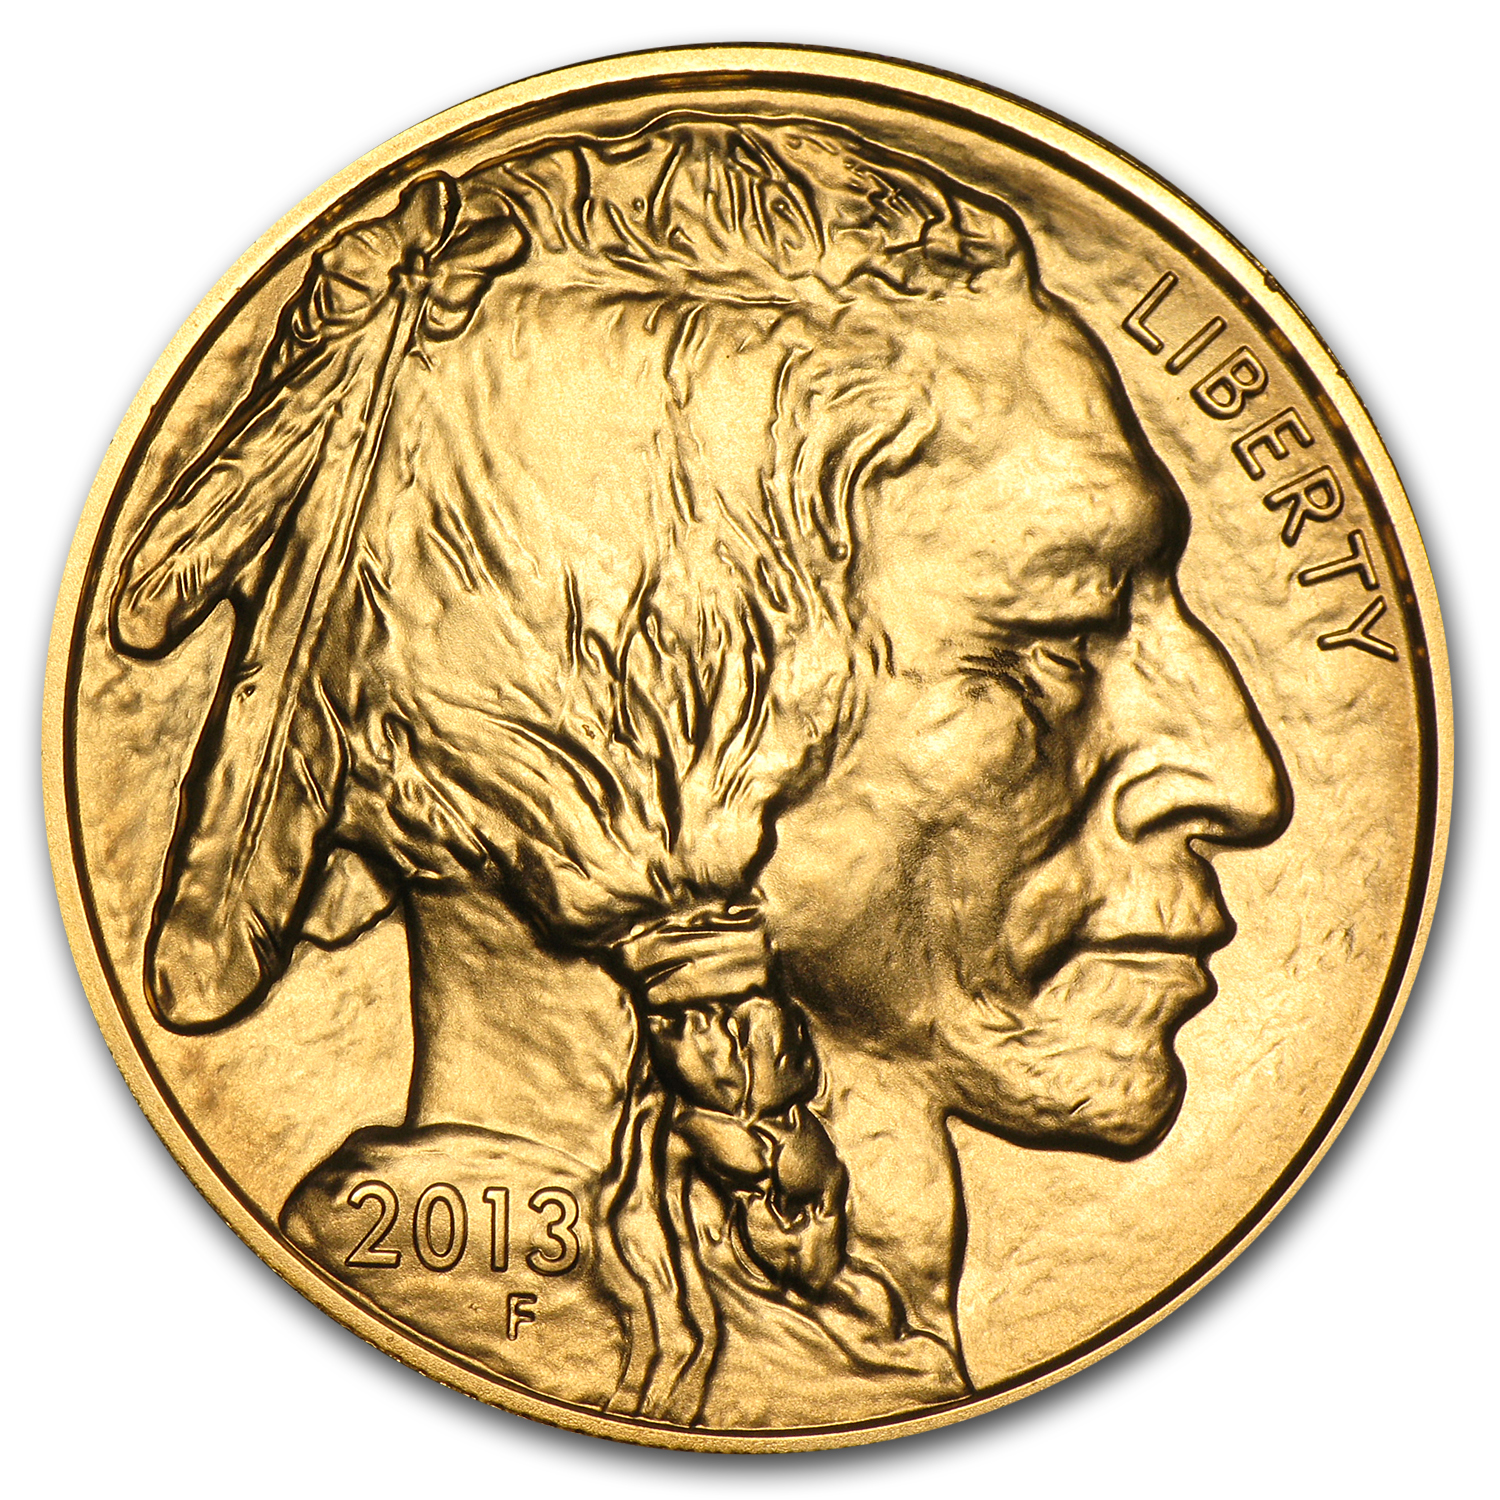 2013 1 oz Gold Buffalo BU